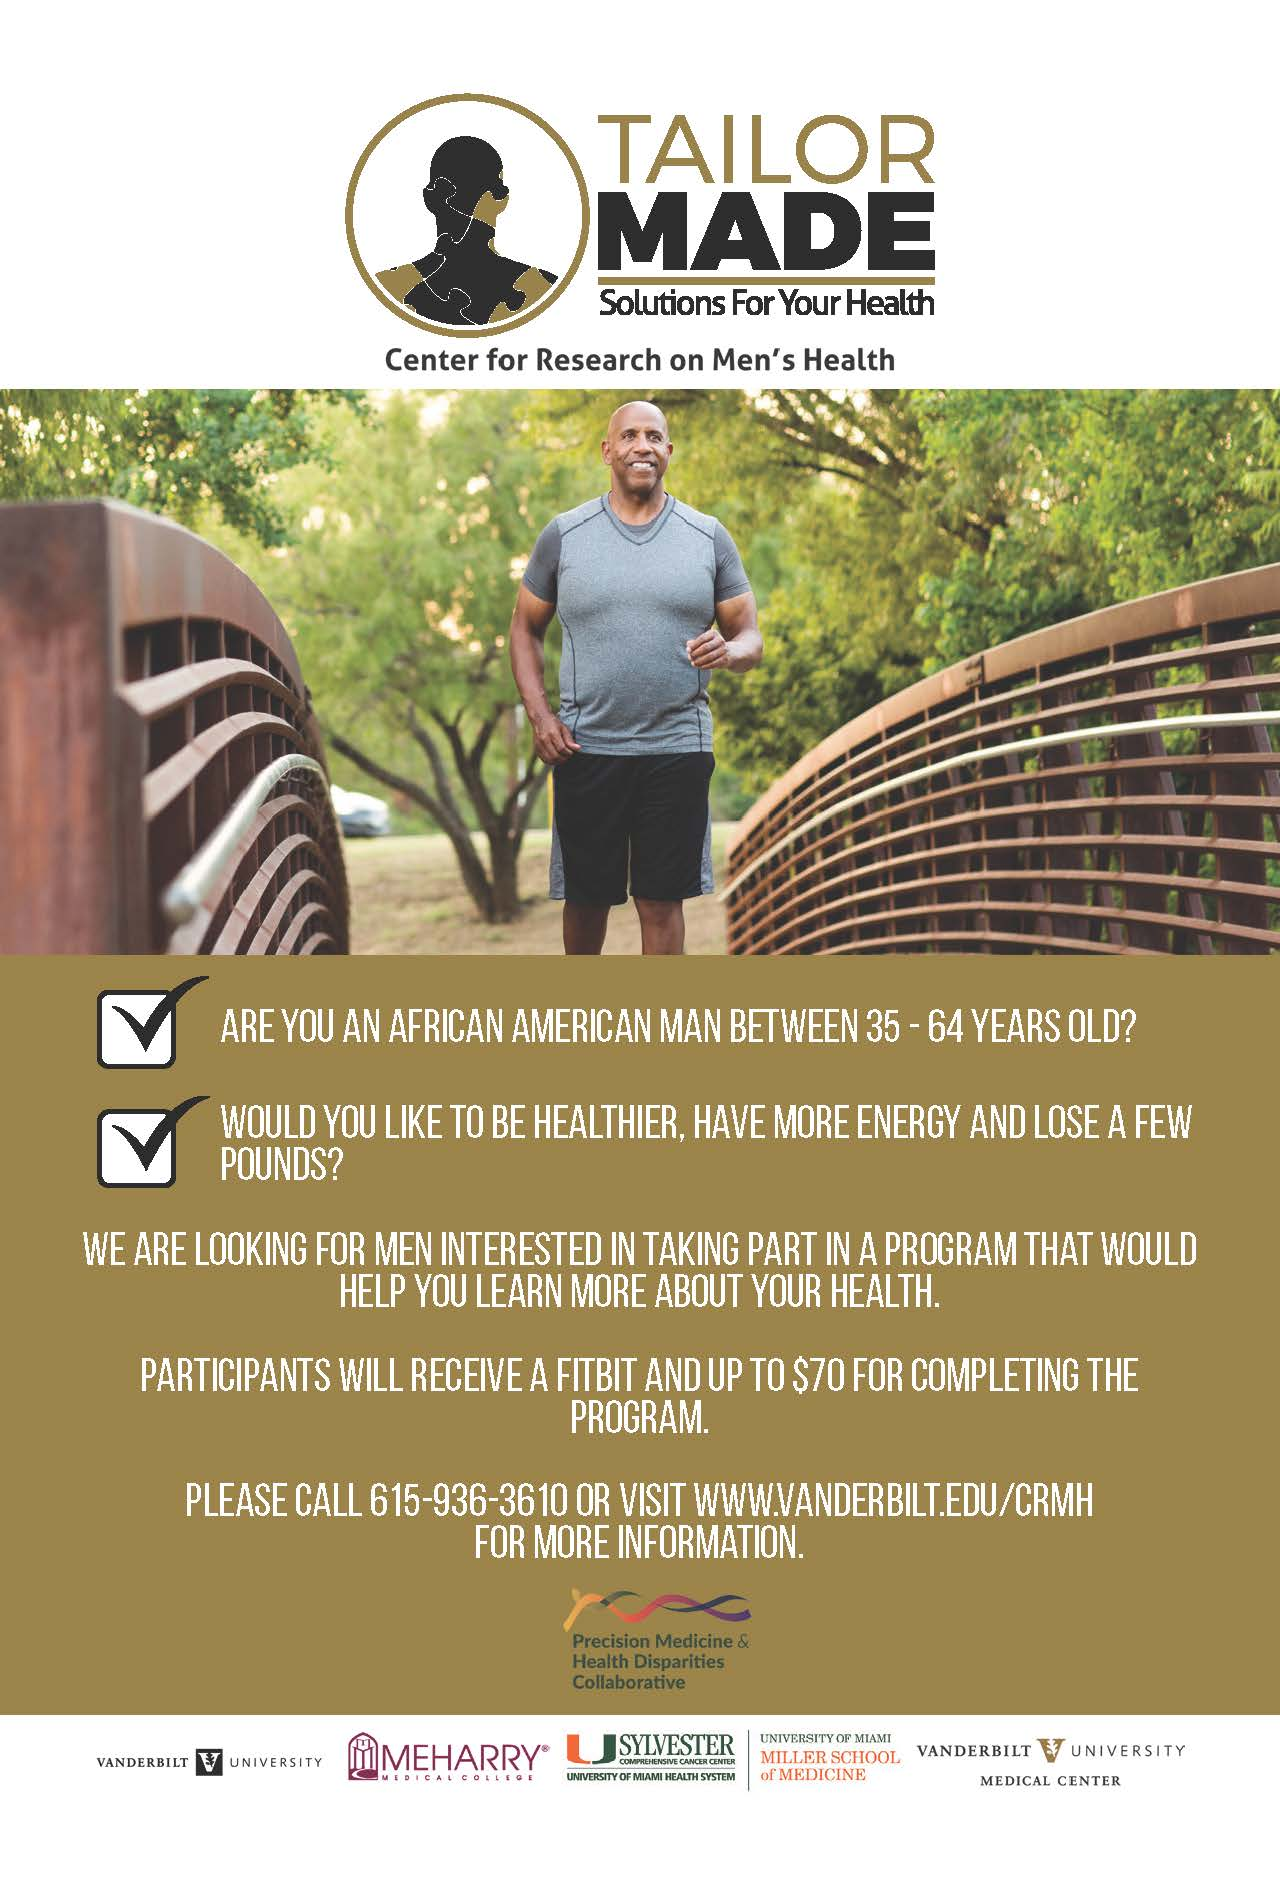 Tailor Made: Solutions for Your Health | tailormade | Center